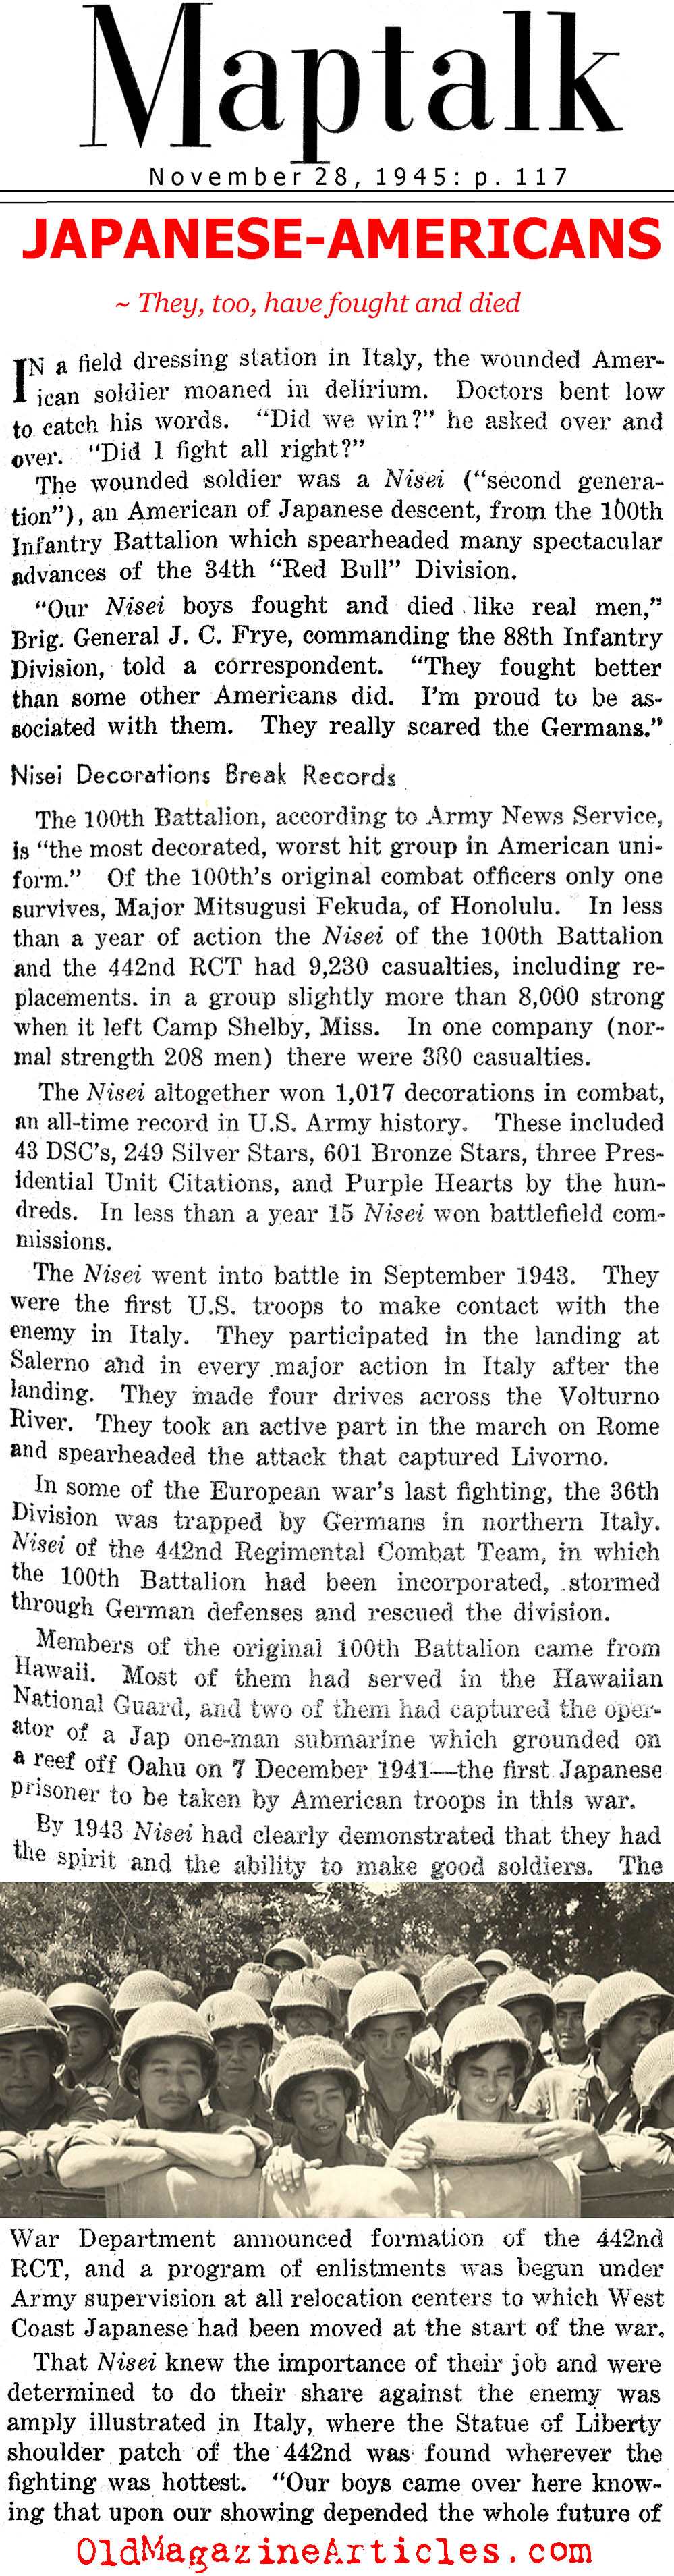 ''They, Too, Have Fought and Died'' (Maptalk, 1945)